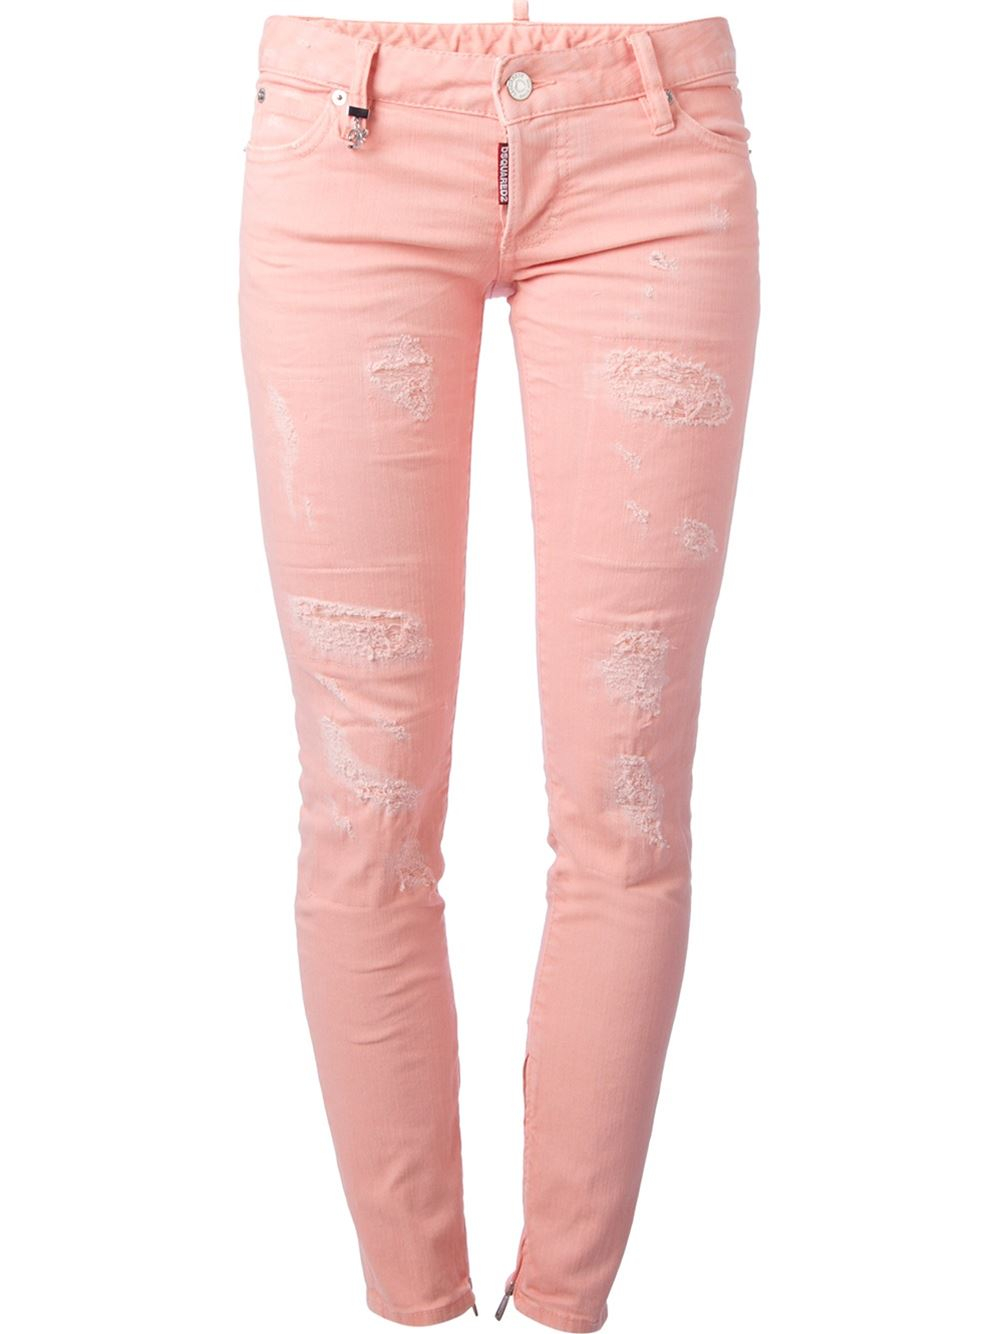 Pink Skinny Jeans - Jeans Am